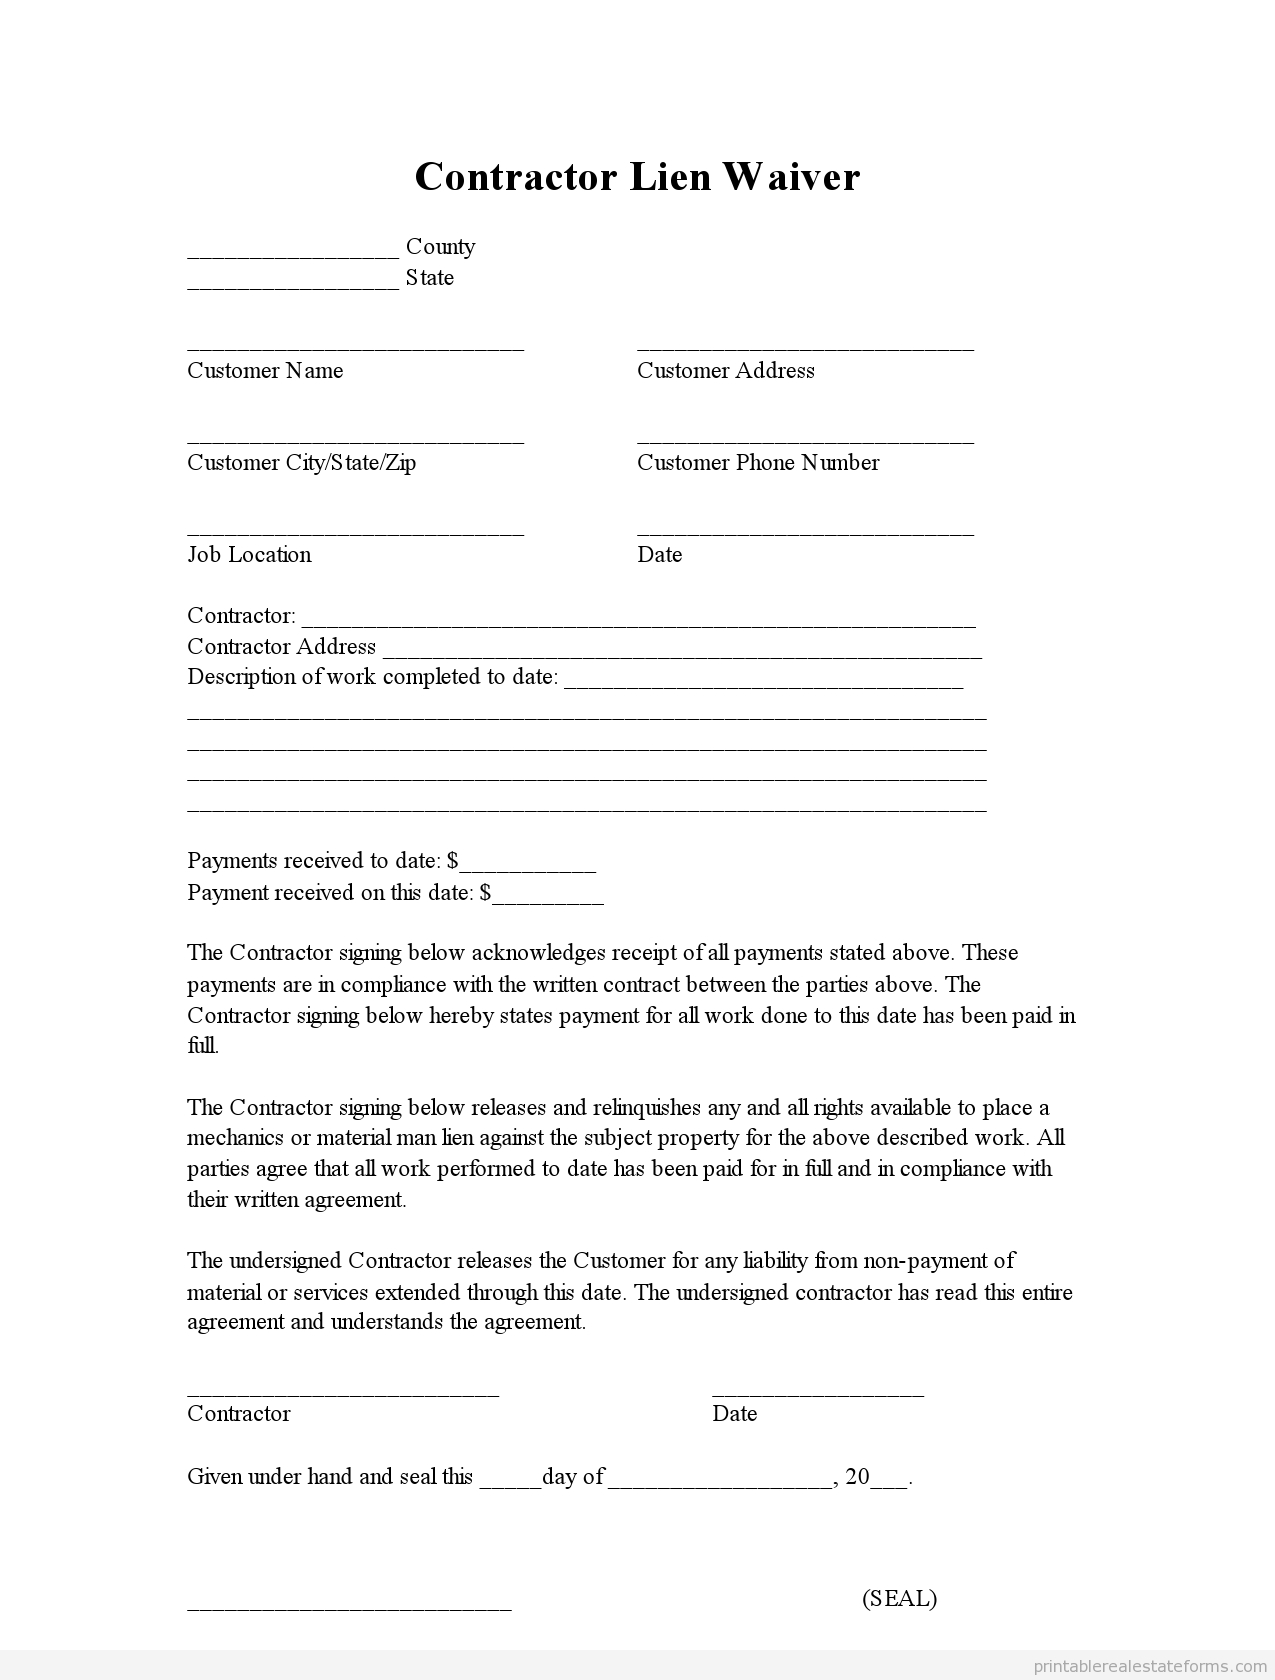 Constructive Eviction Letter Template - Sample Printable Contractor Lien Waiver form